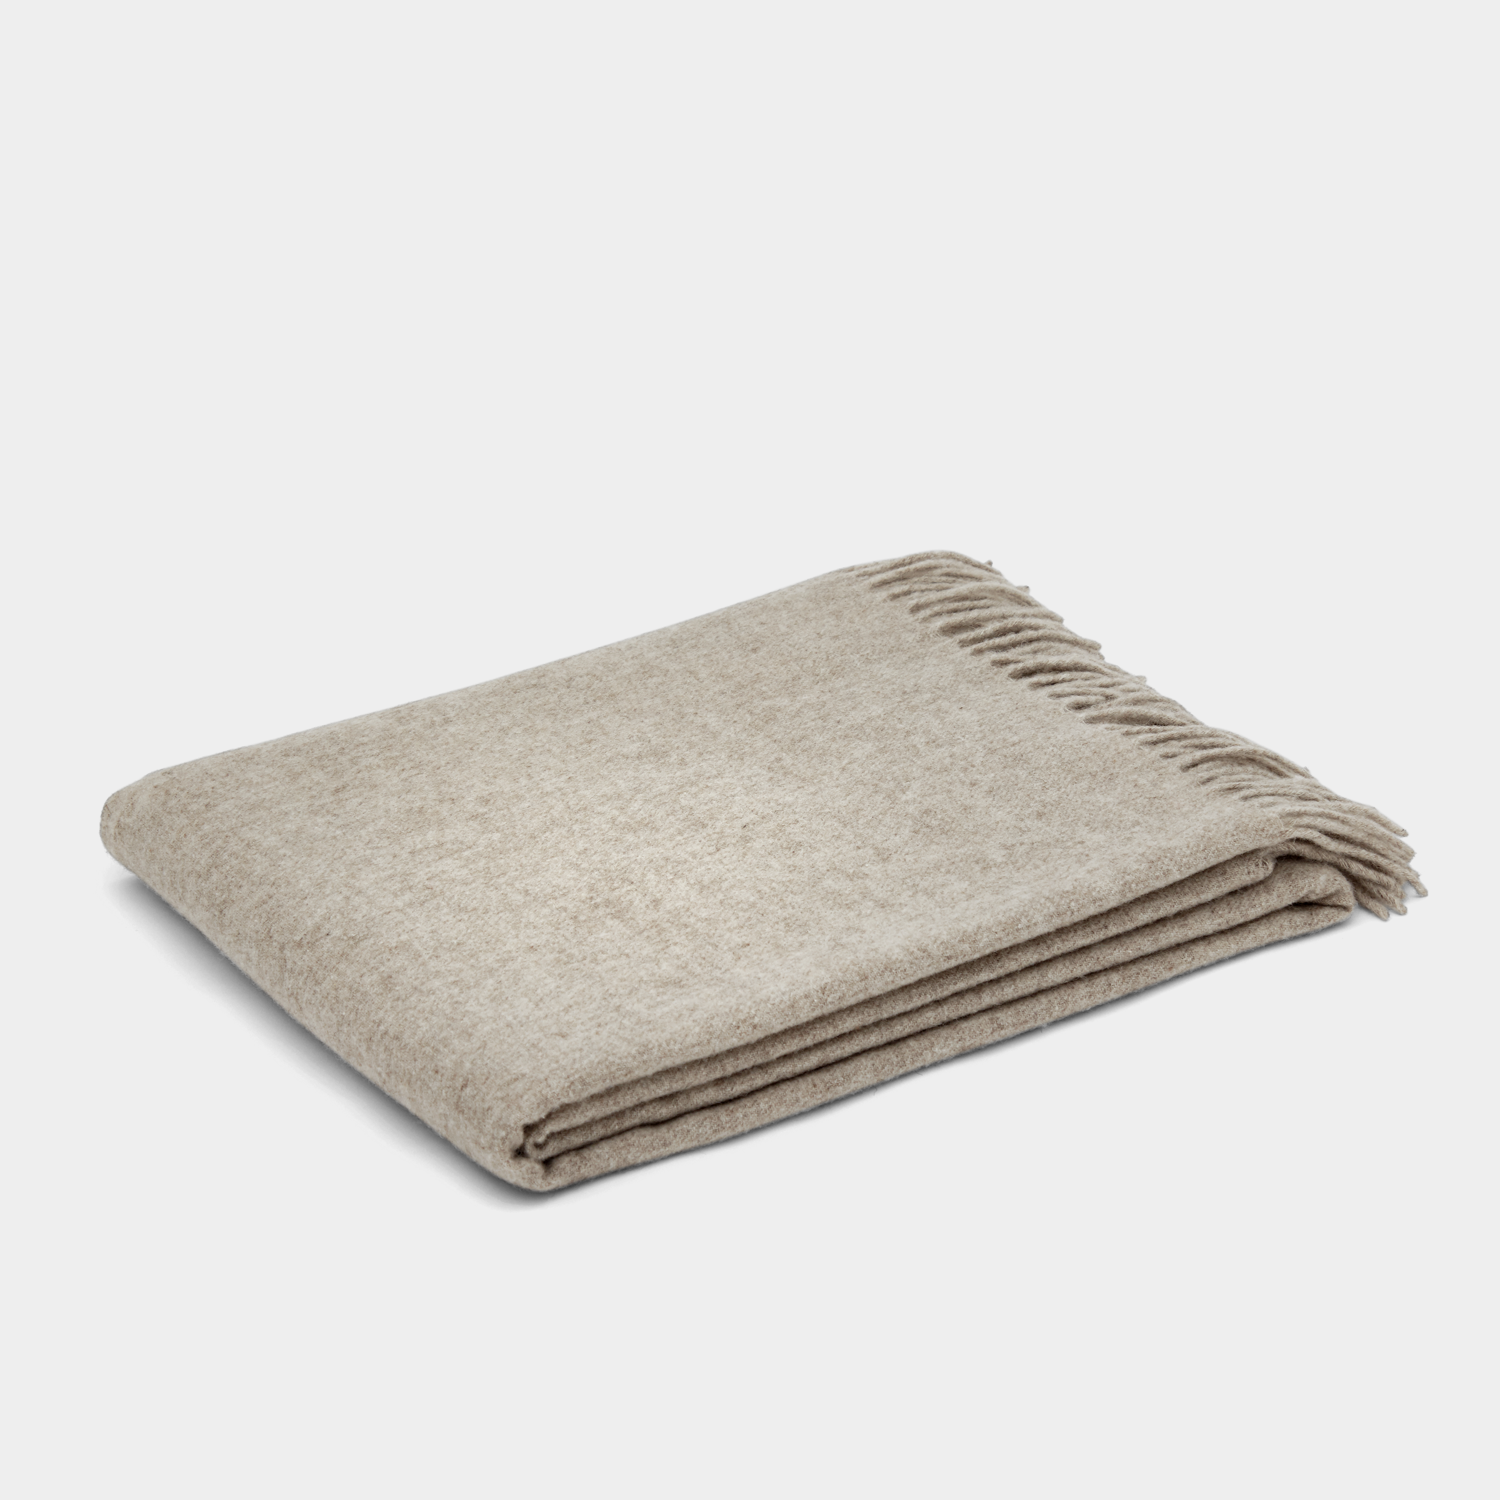 Klippan Gobi Mongolian Merino Wool Throw - Sand